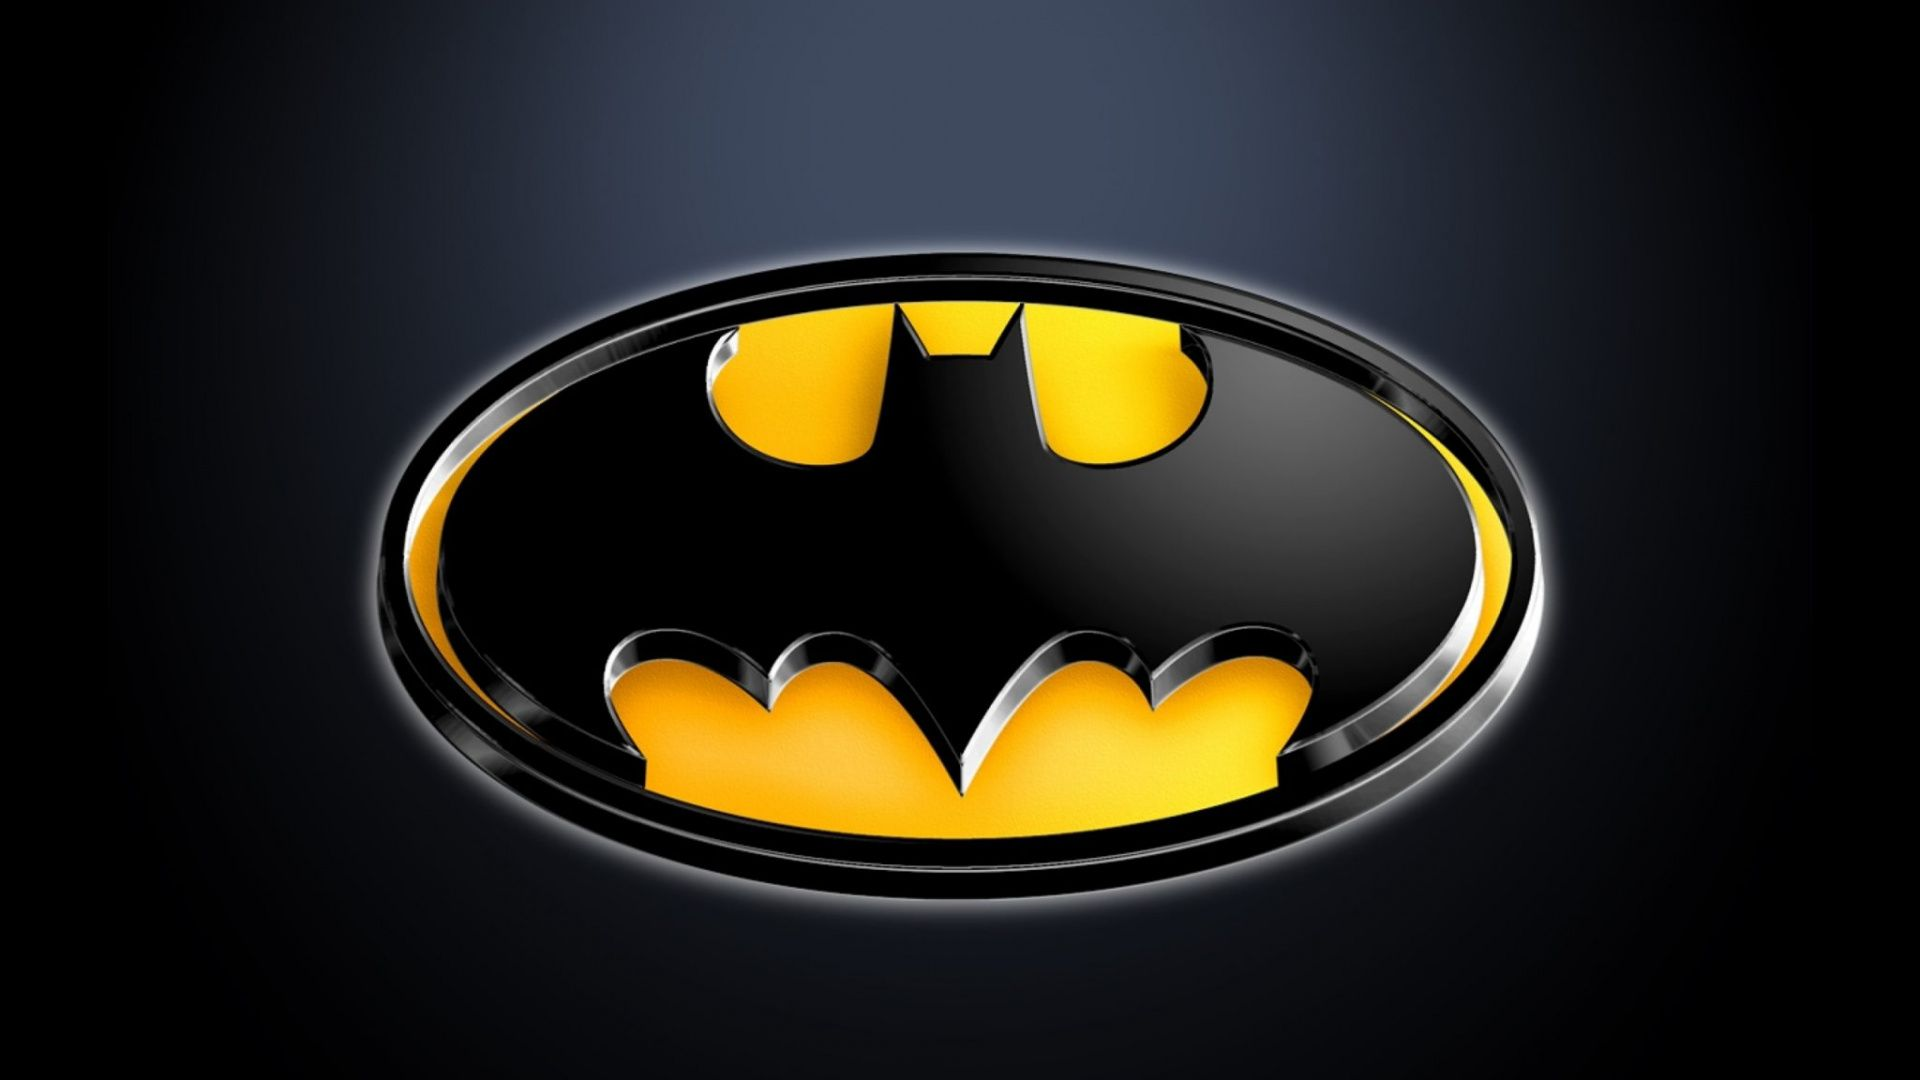 Sachtleben Superman, Batman, Yellow, Symbol, Graphics